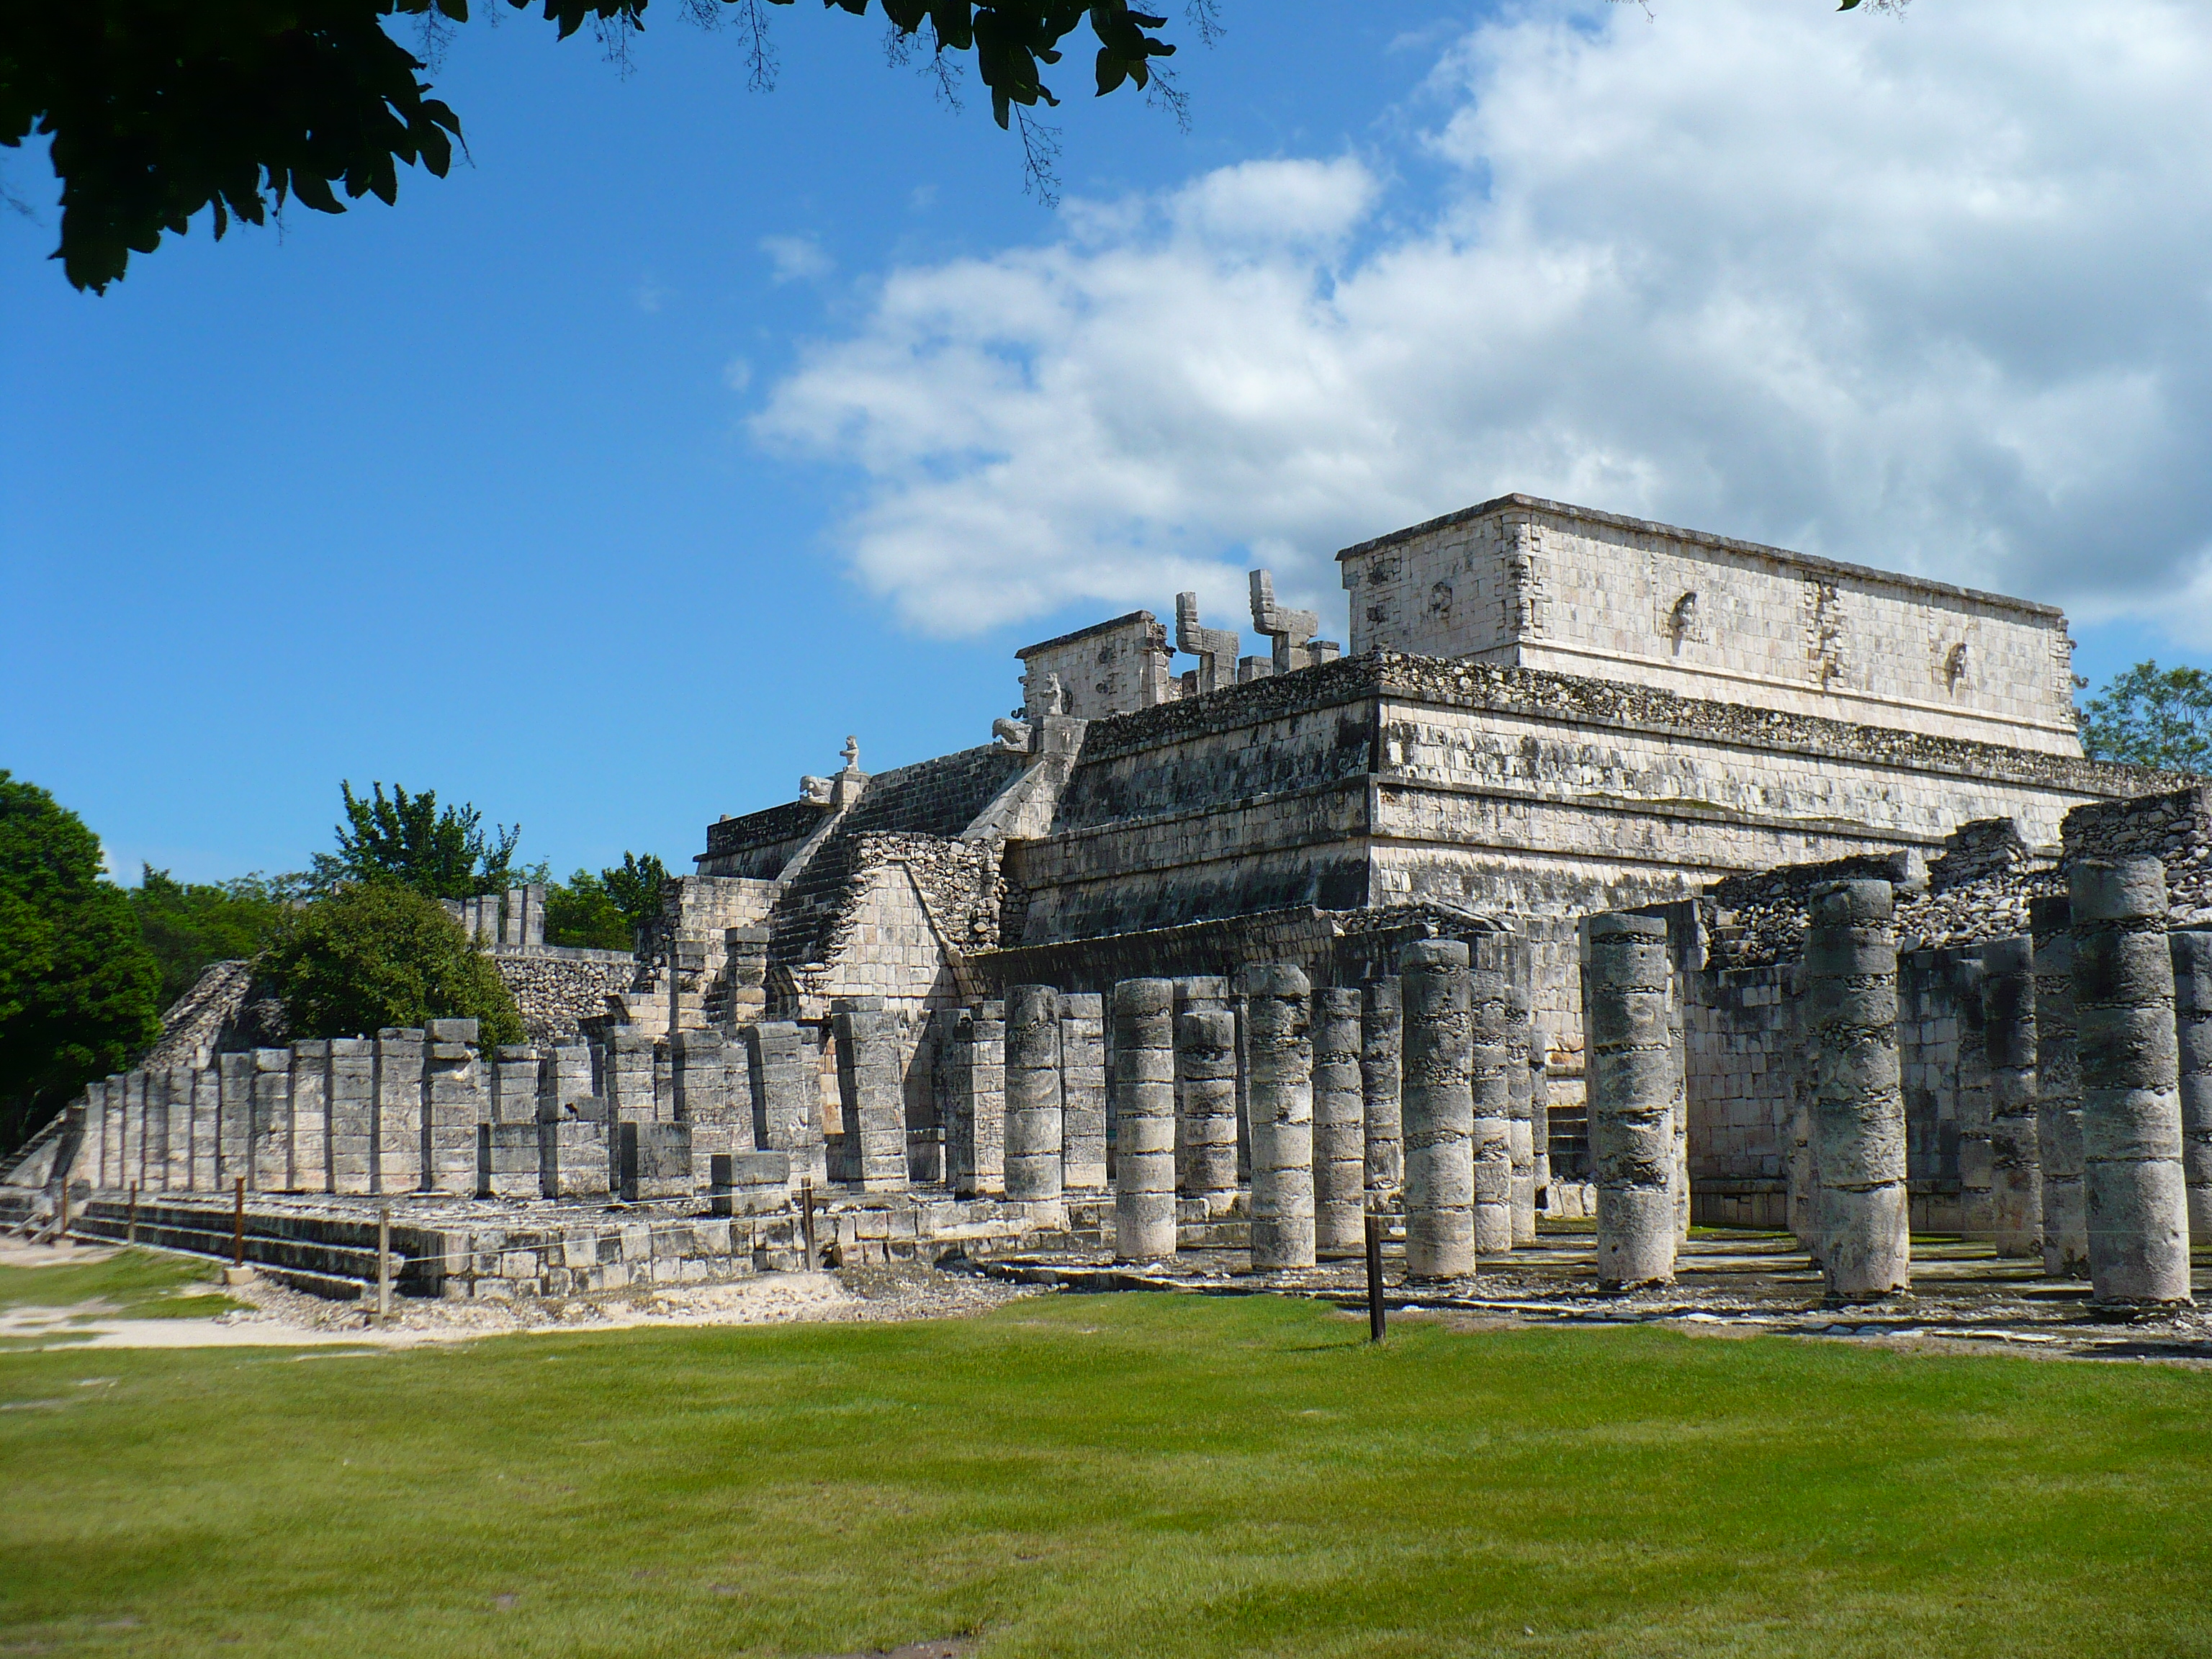 Temple of one thousand colums